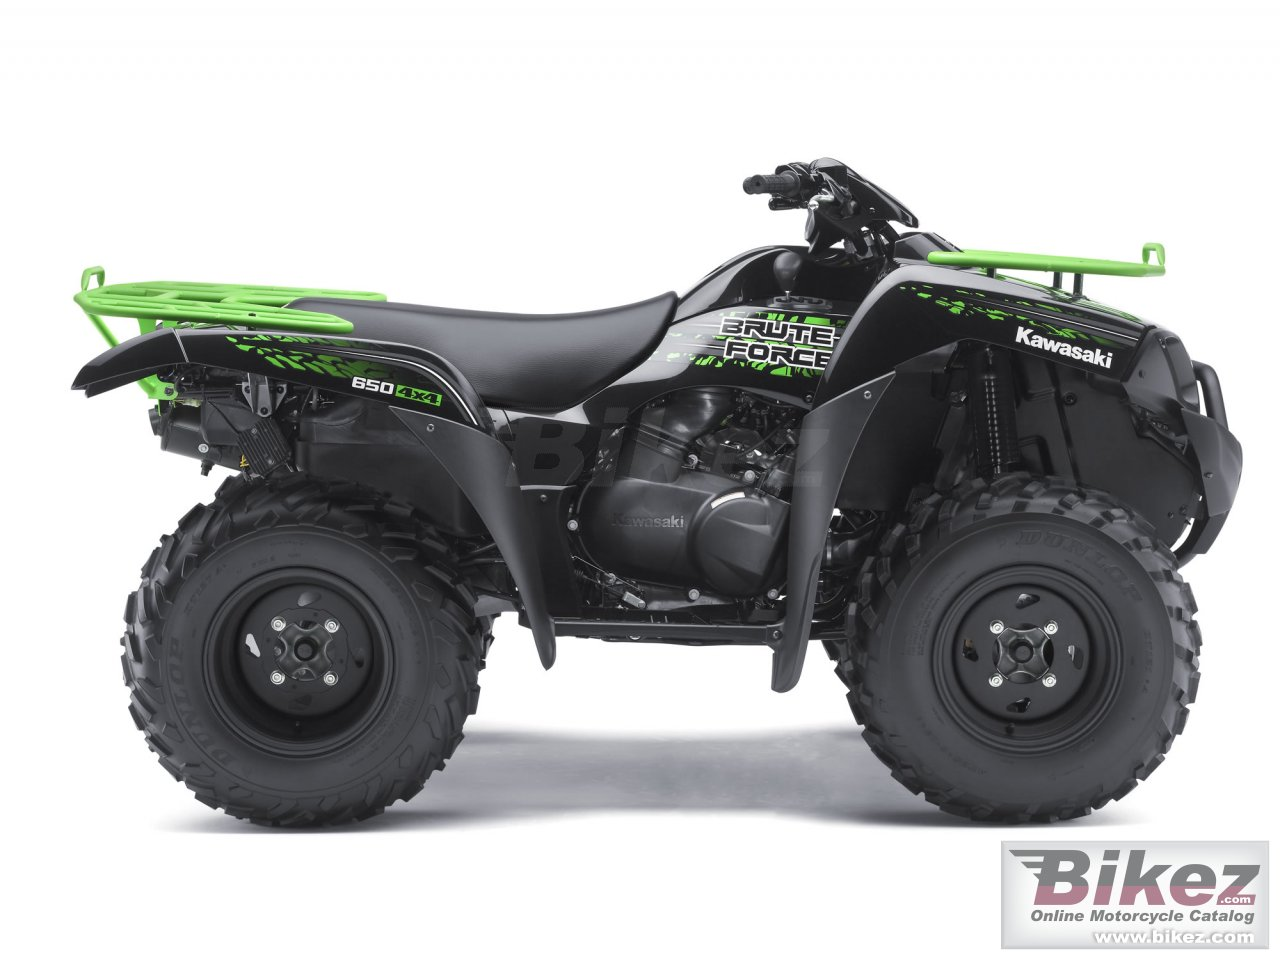 Big Kawasaki brute force 650 4x4 picture and wallpaper from Bikez.com